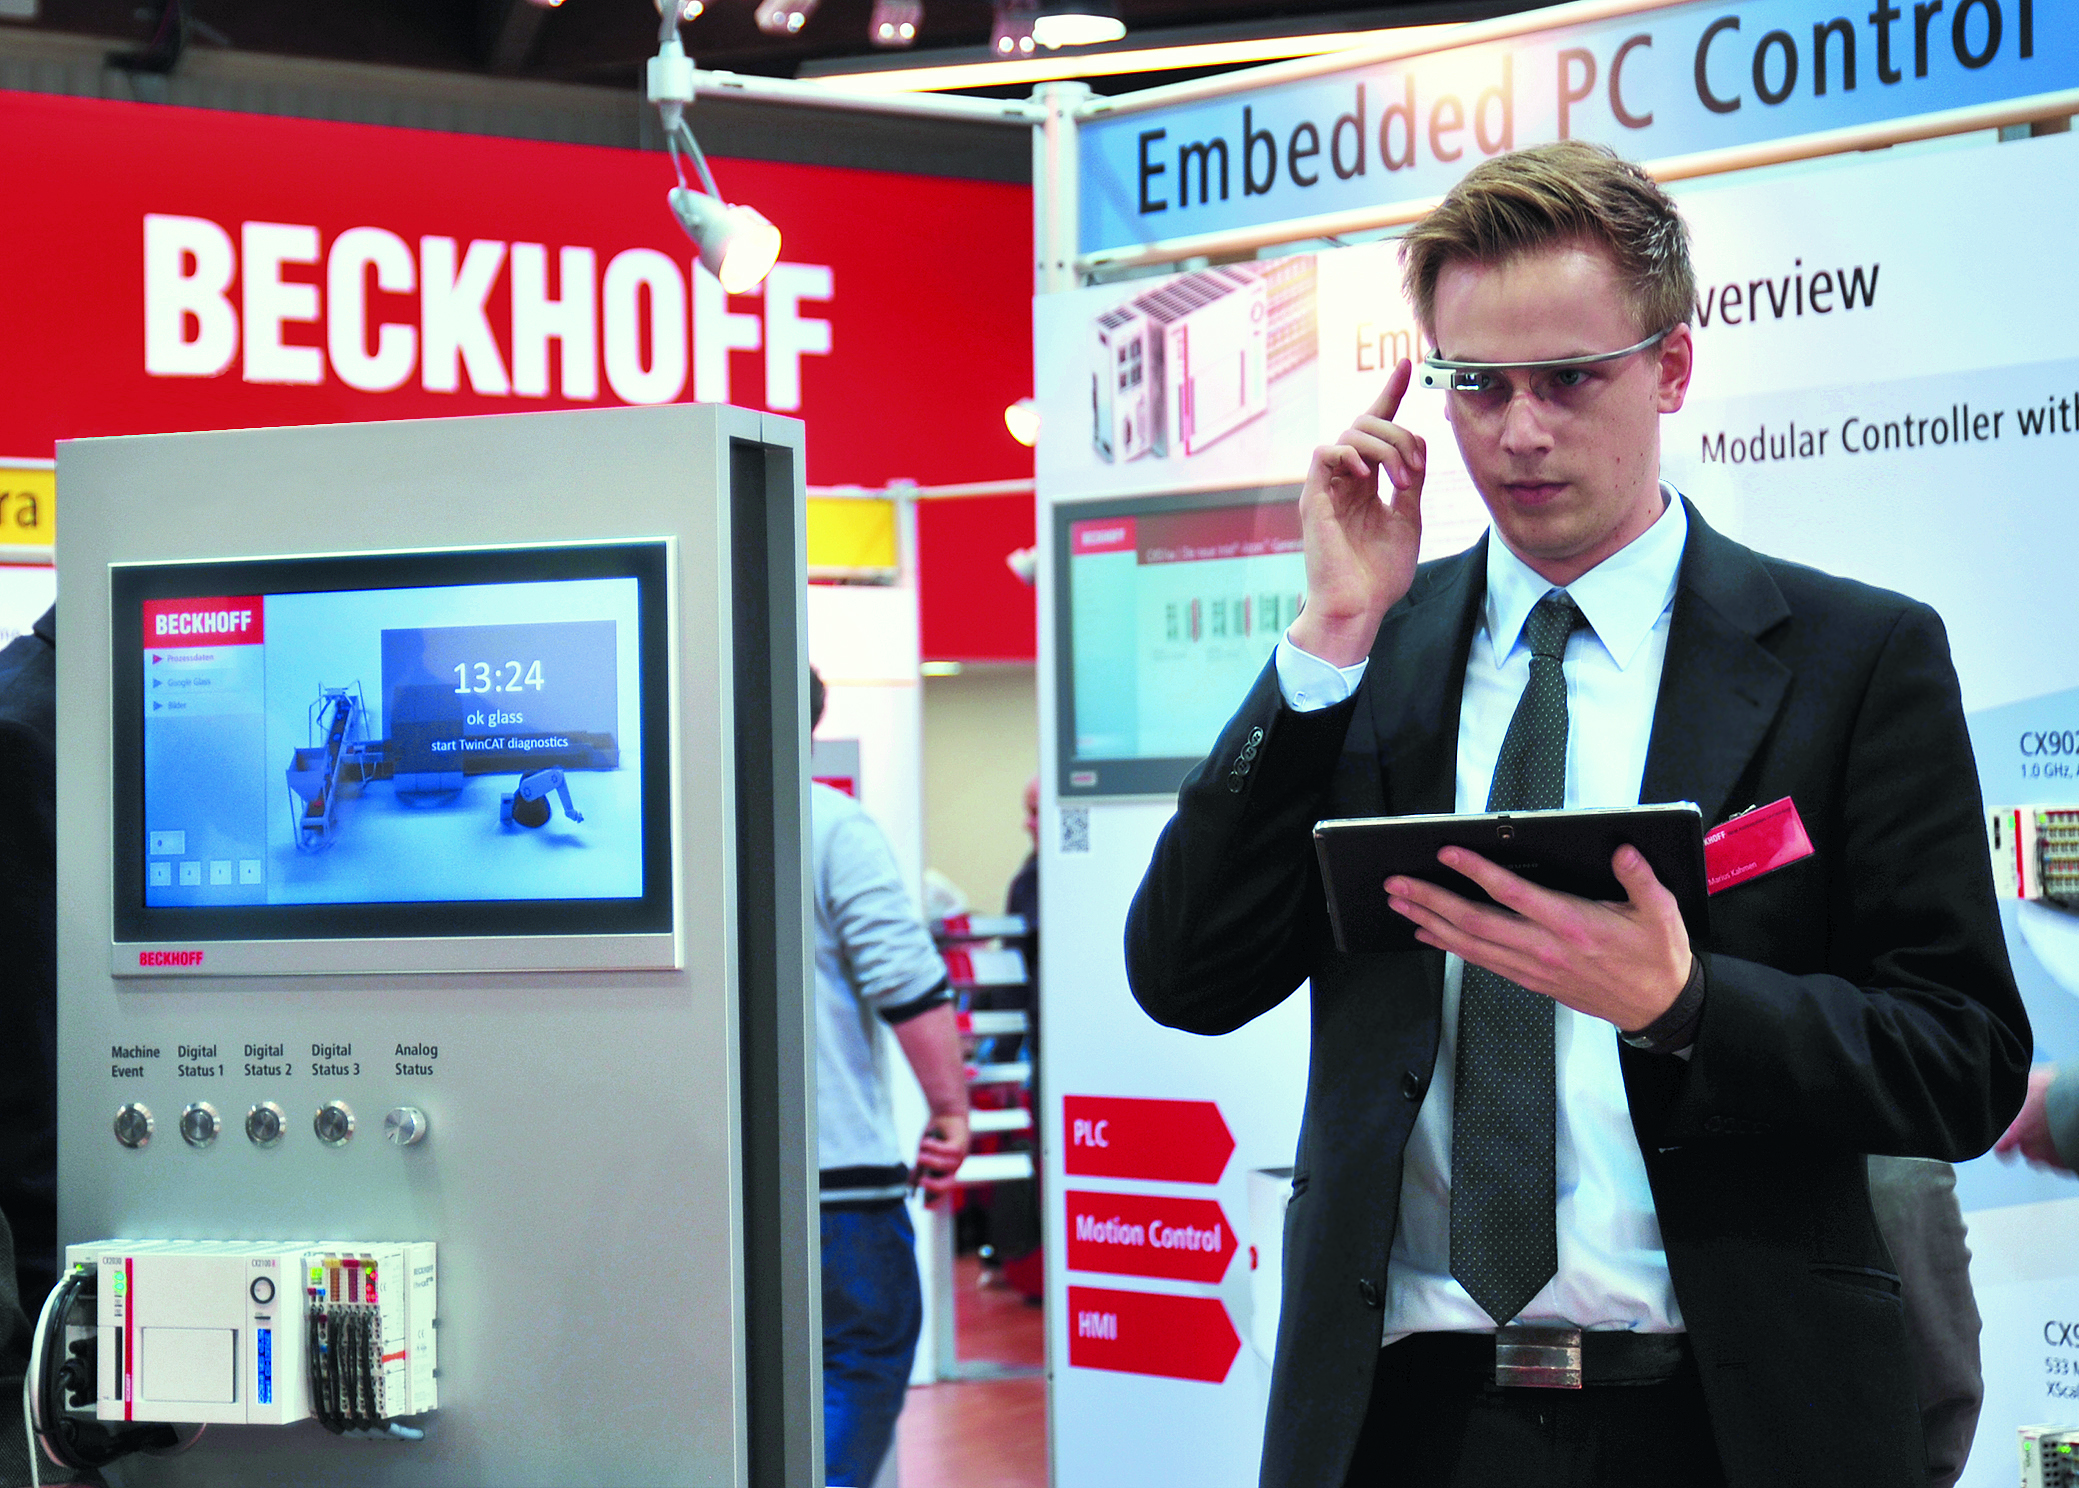 Armchair operator: Beckhoff's Google Glass application allows you to see the status of a machine from a remote location